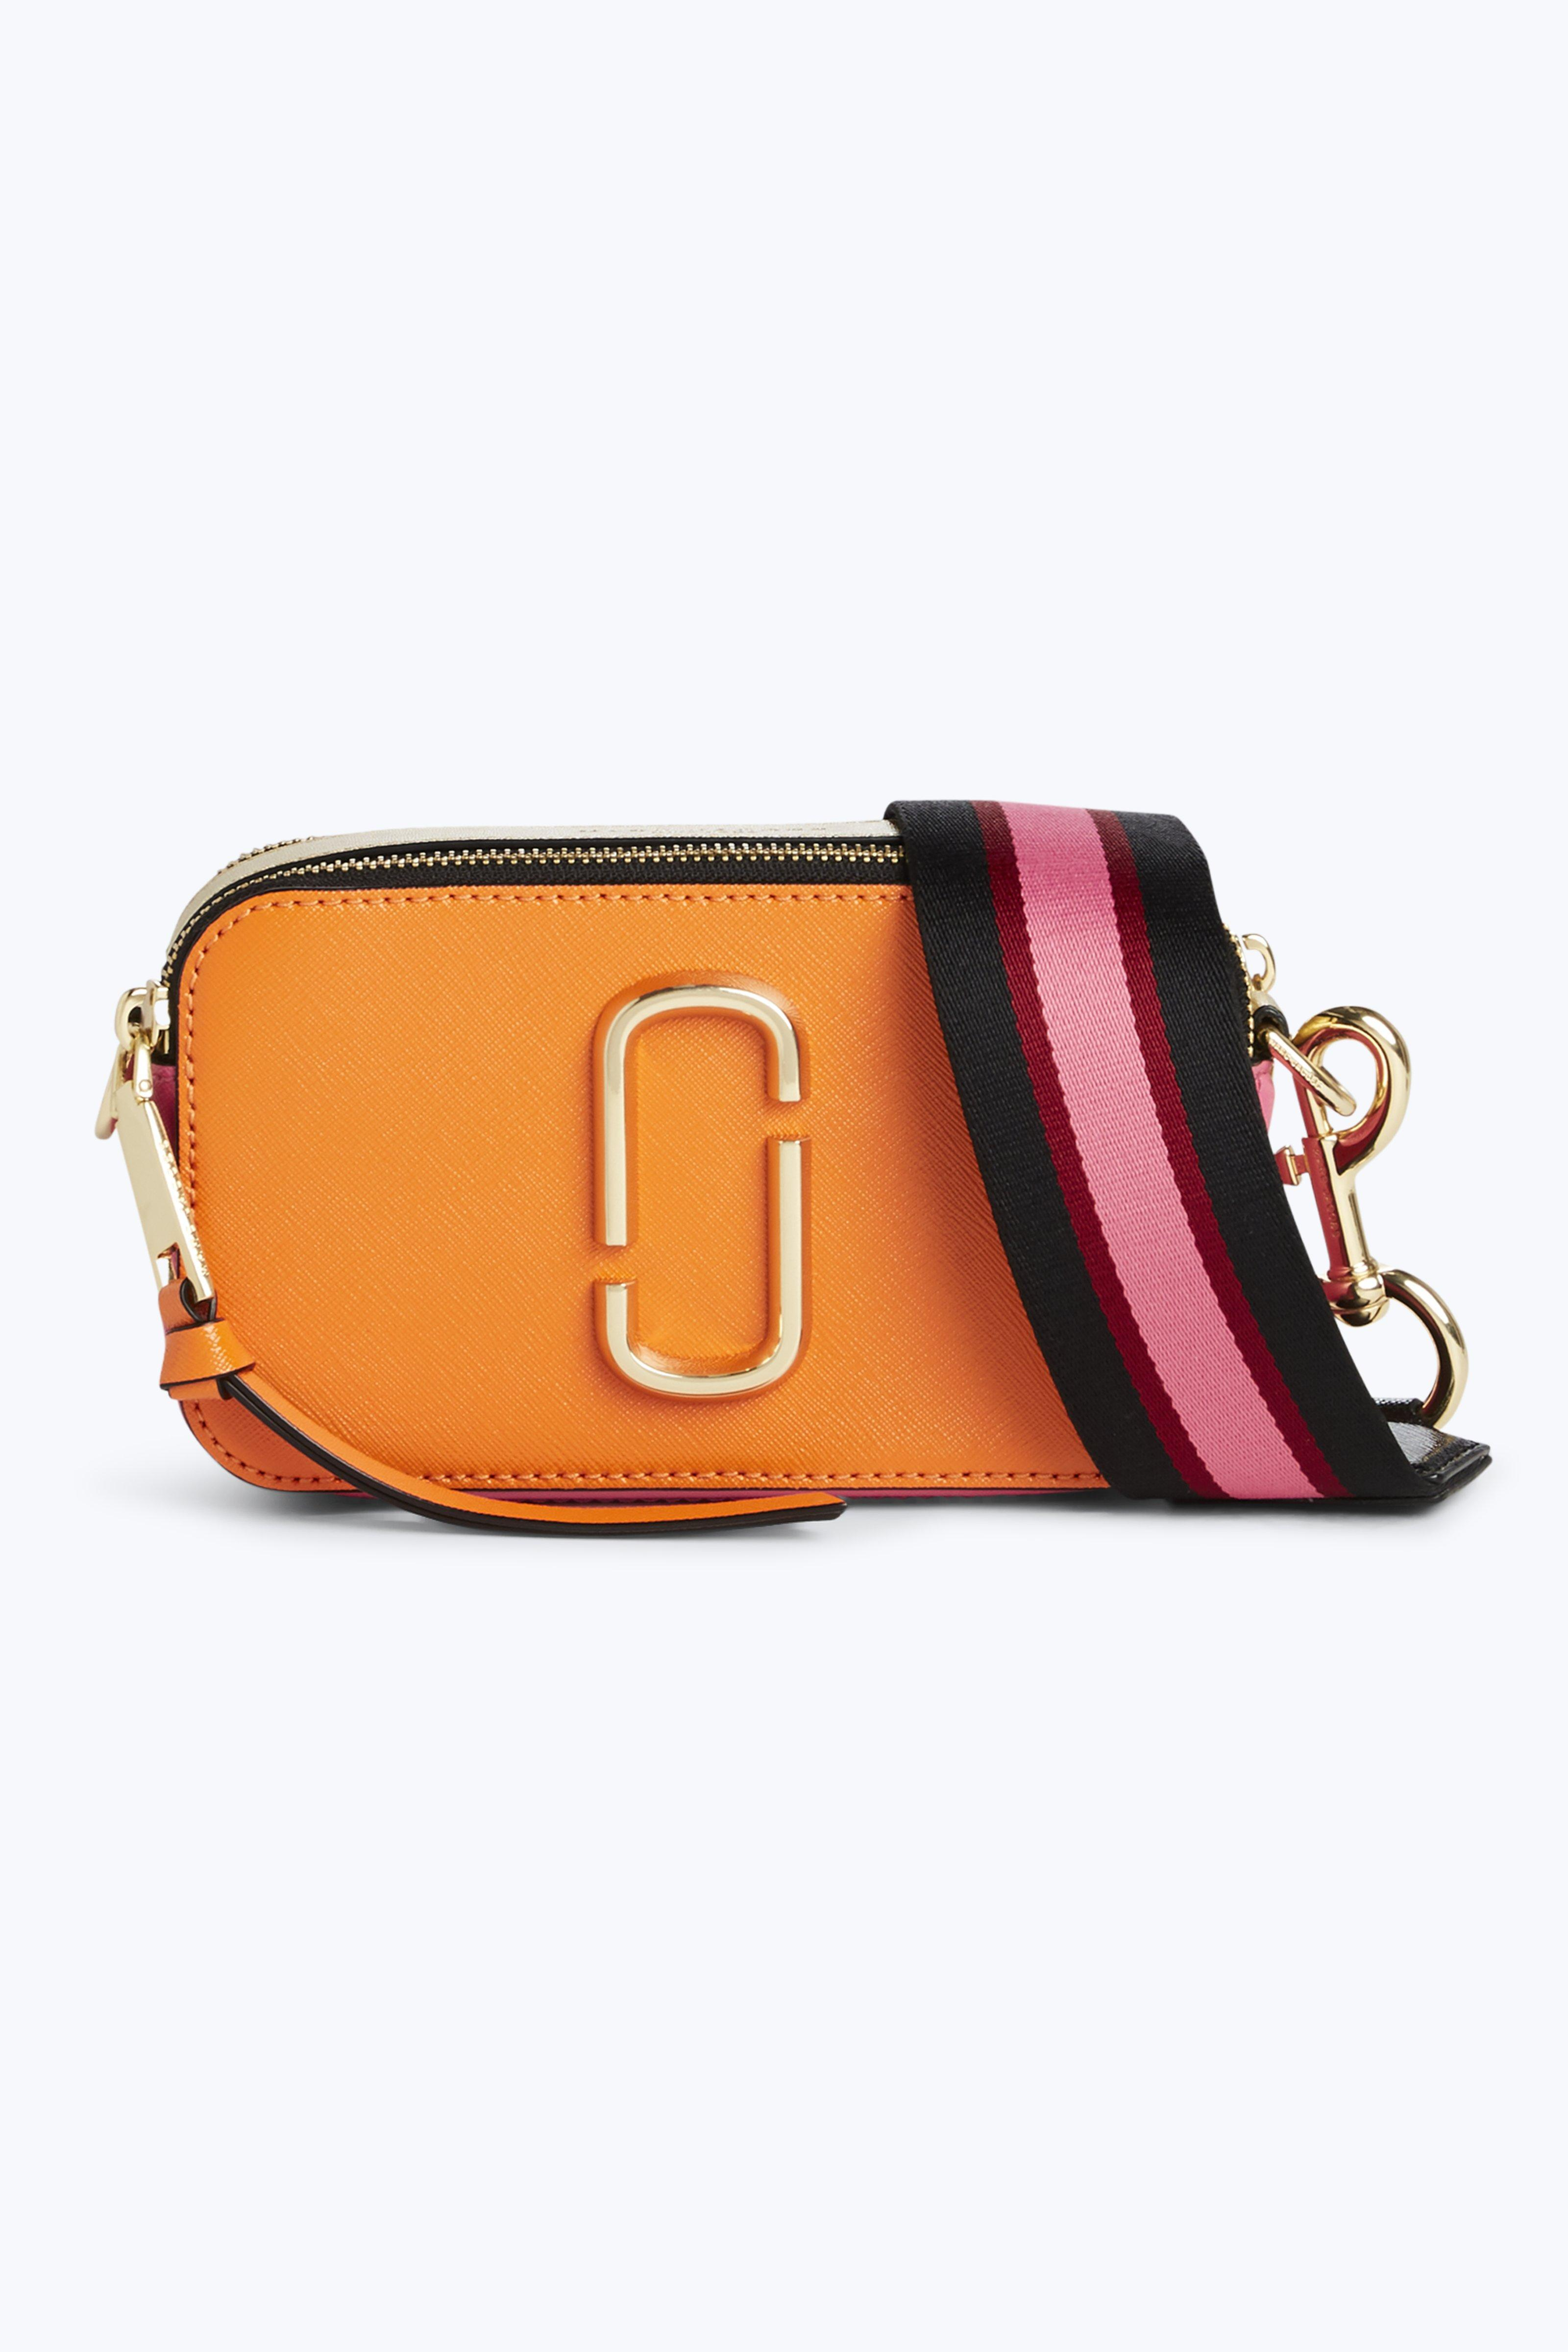 19d2614f06d Gallery. Previously sold at: Marc Jacobs · Women's Camera Bags